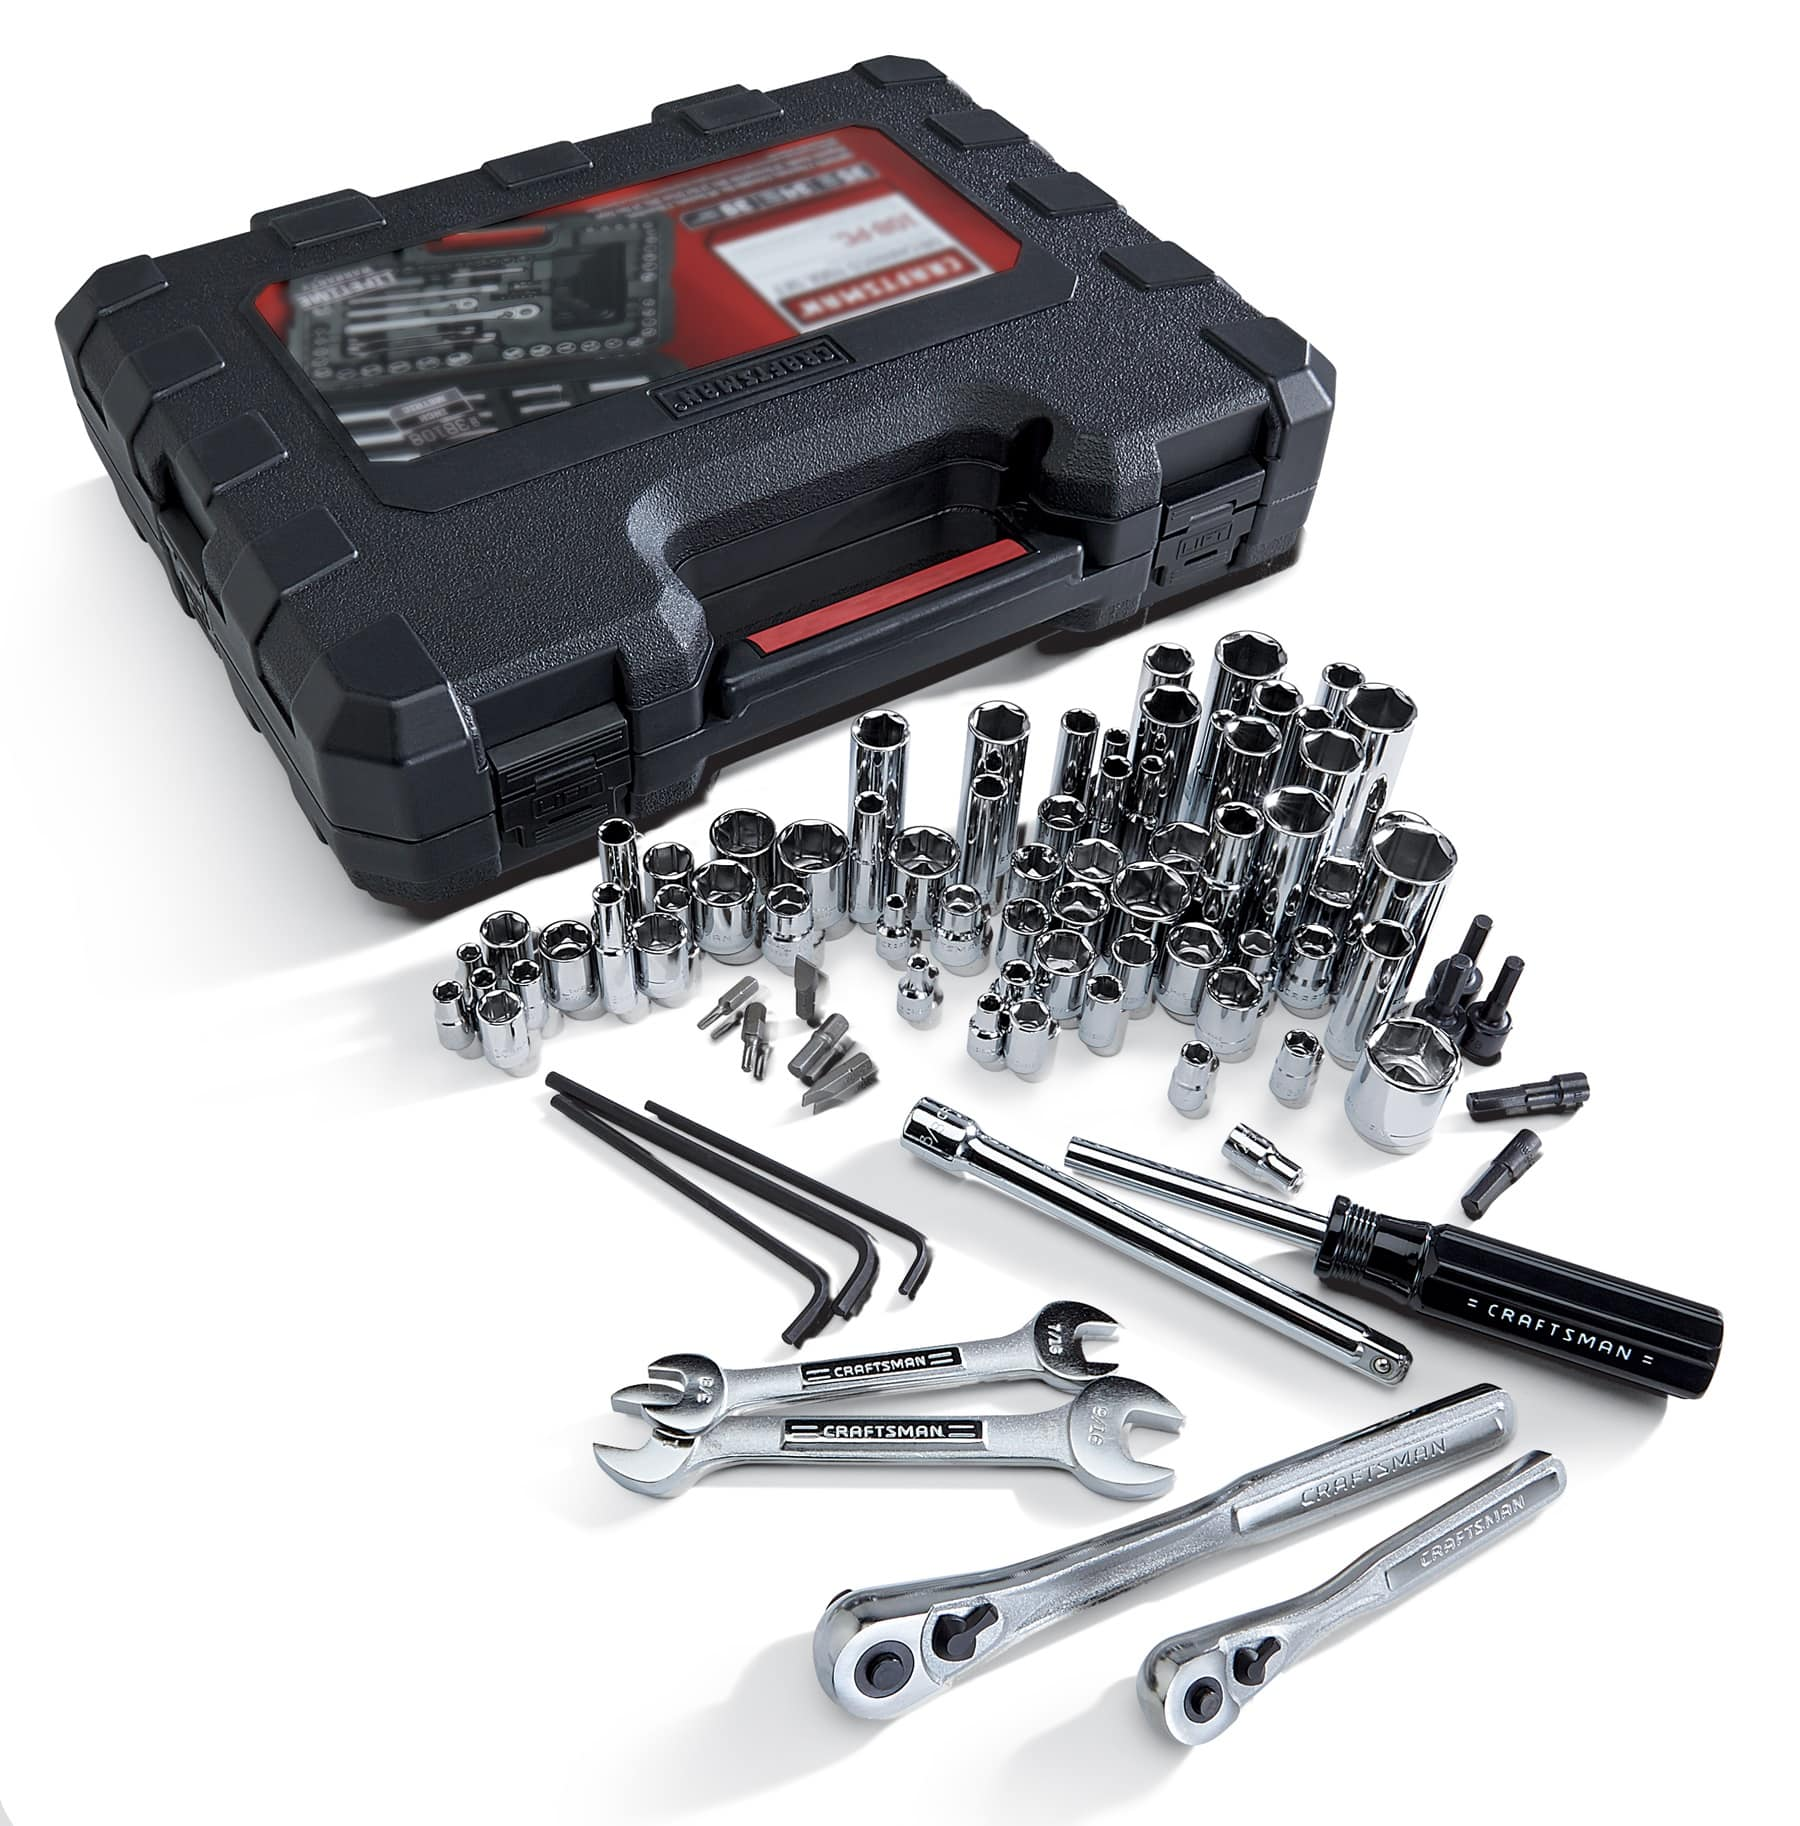 Craftsman 230-piece set